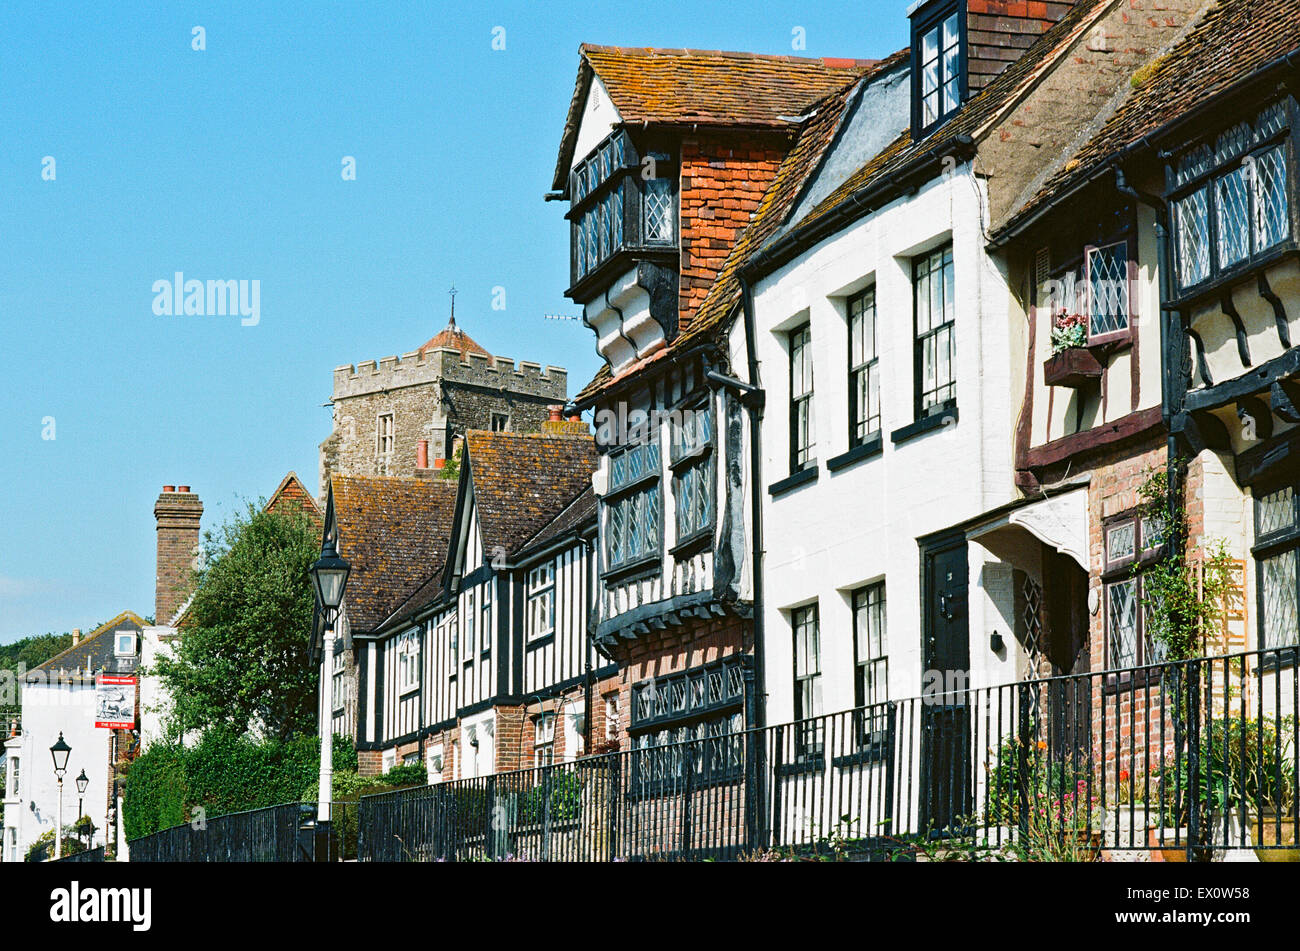 Hastings Old Town street, East Sussex, UK Stock Photo